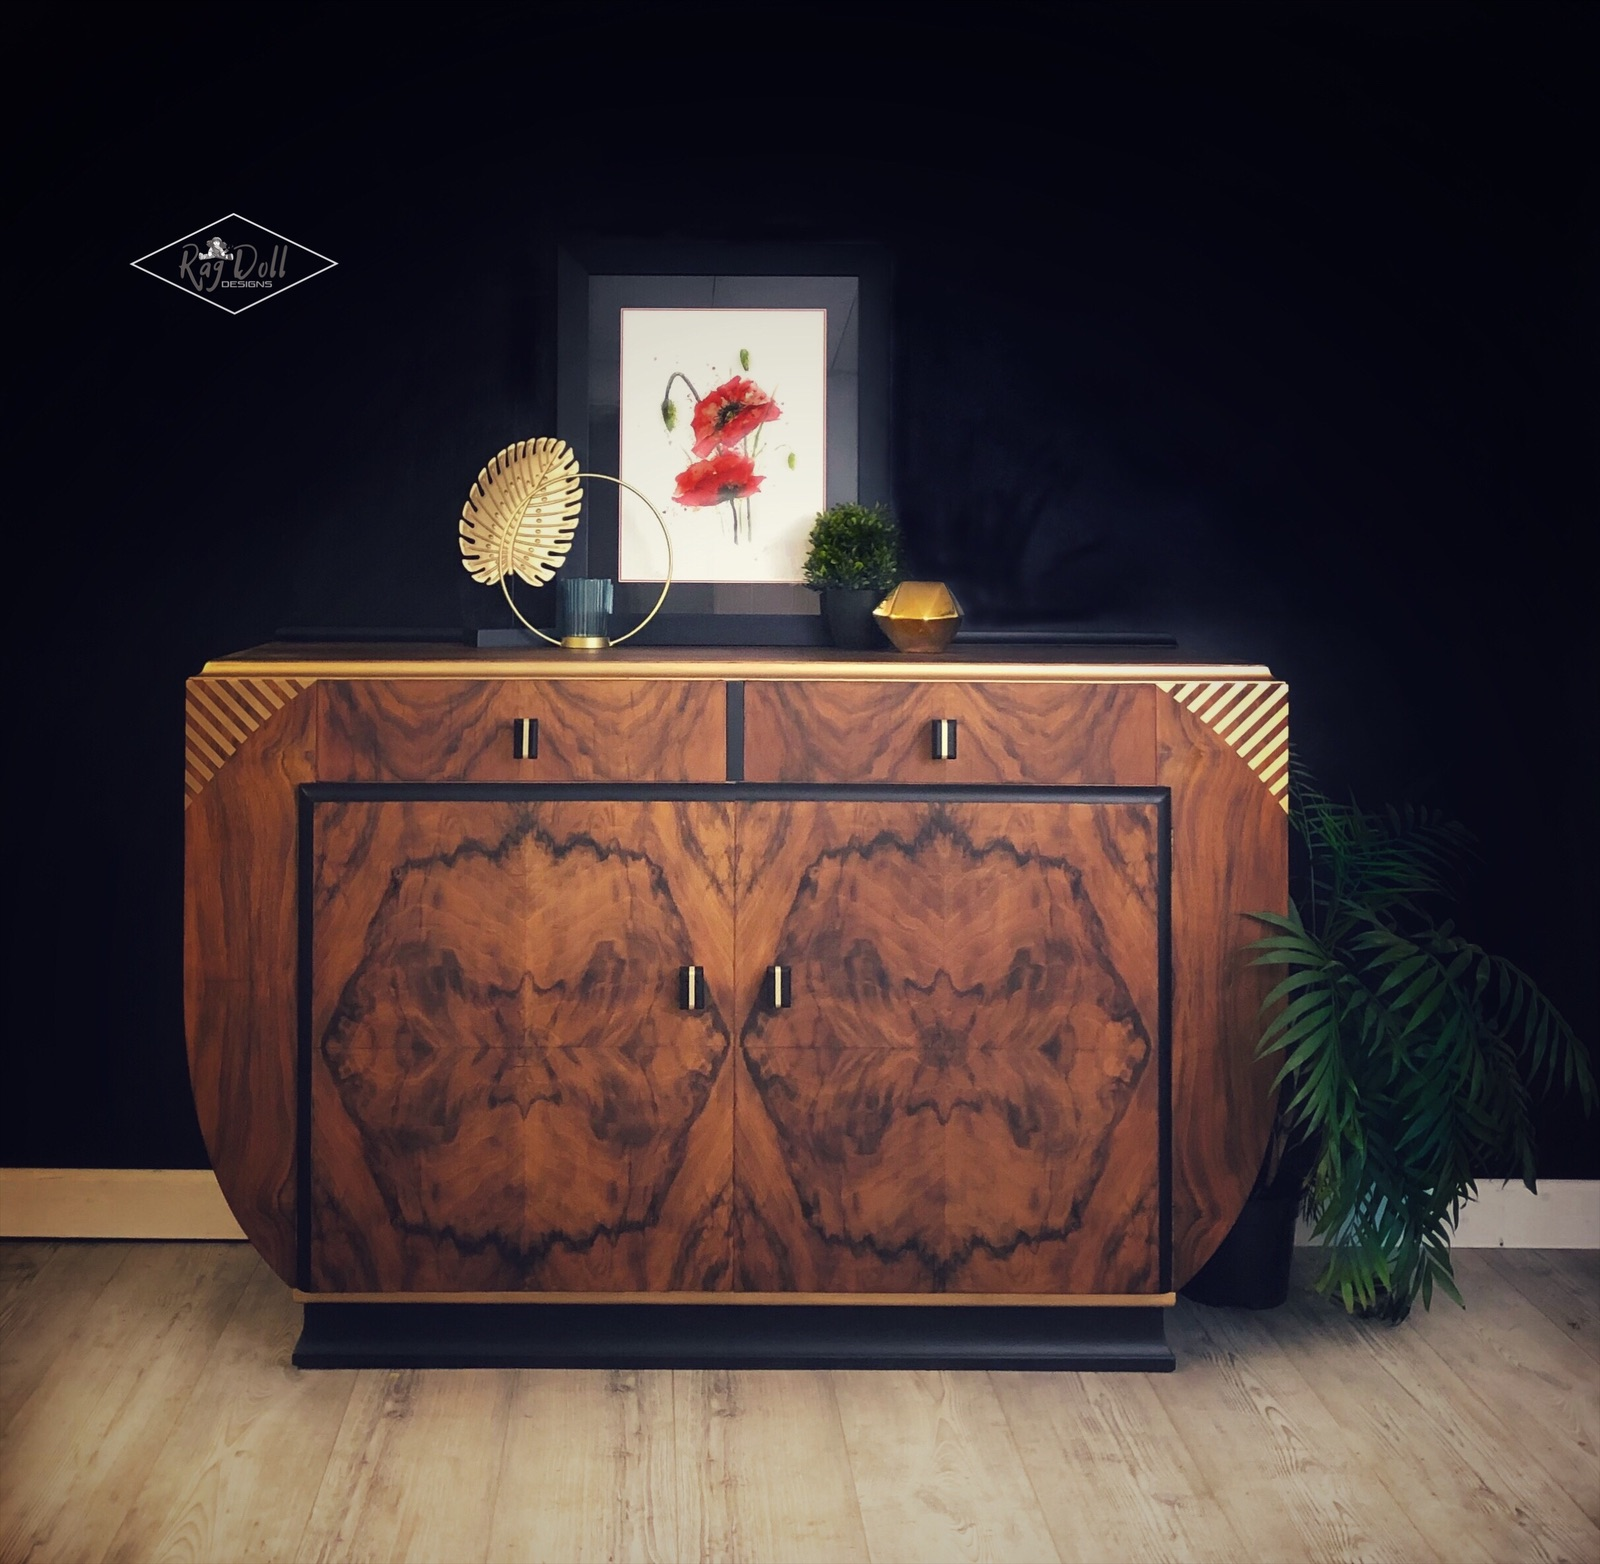 The House of Upcycling: Rag Doll Design Studio Refinished Art Deco Style Sideboard